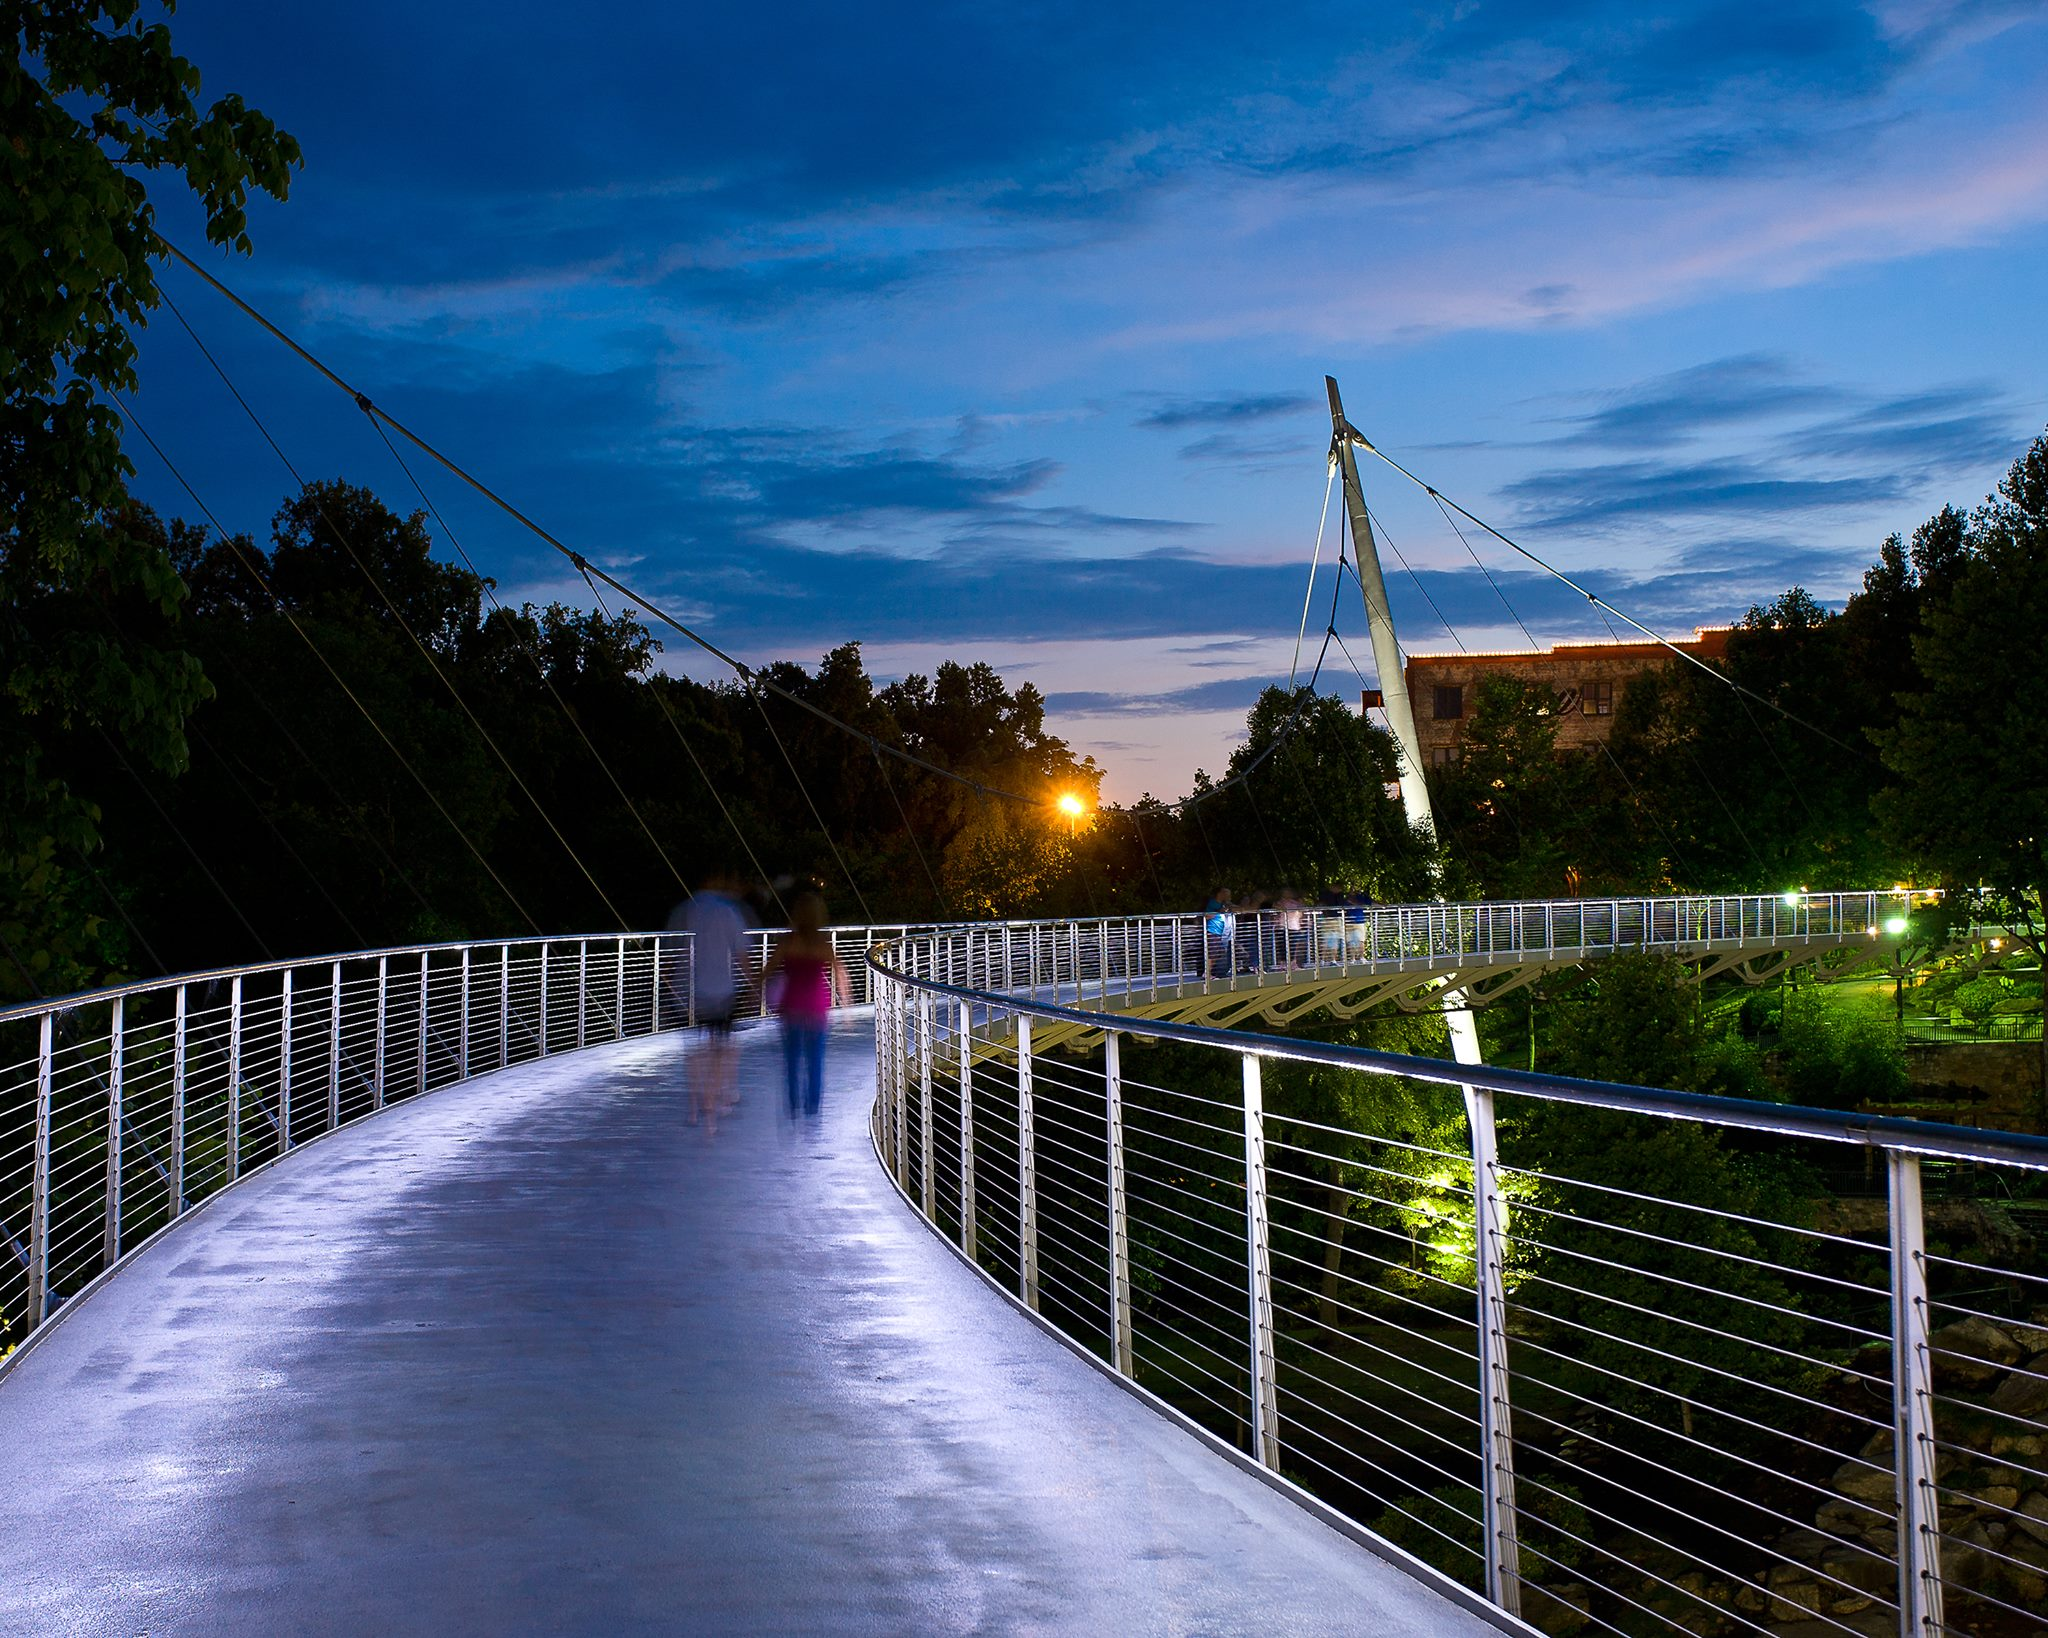 greenville south carolina is the coolest town in the south